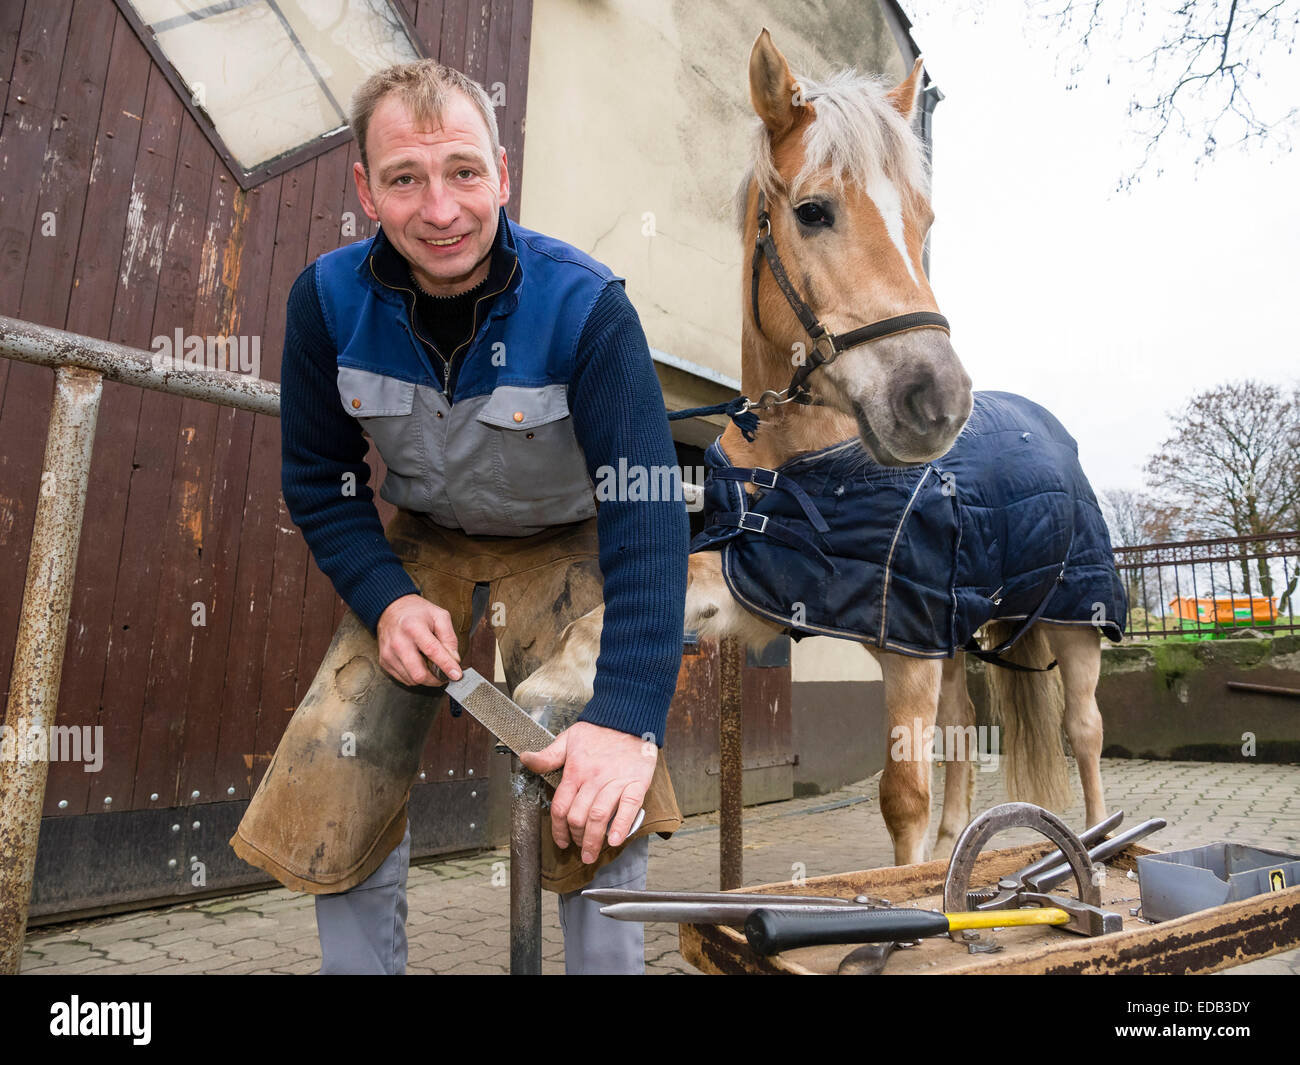 A farrier shoes a Haflinger mare. - Stock Image